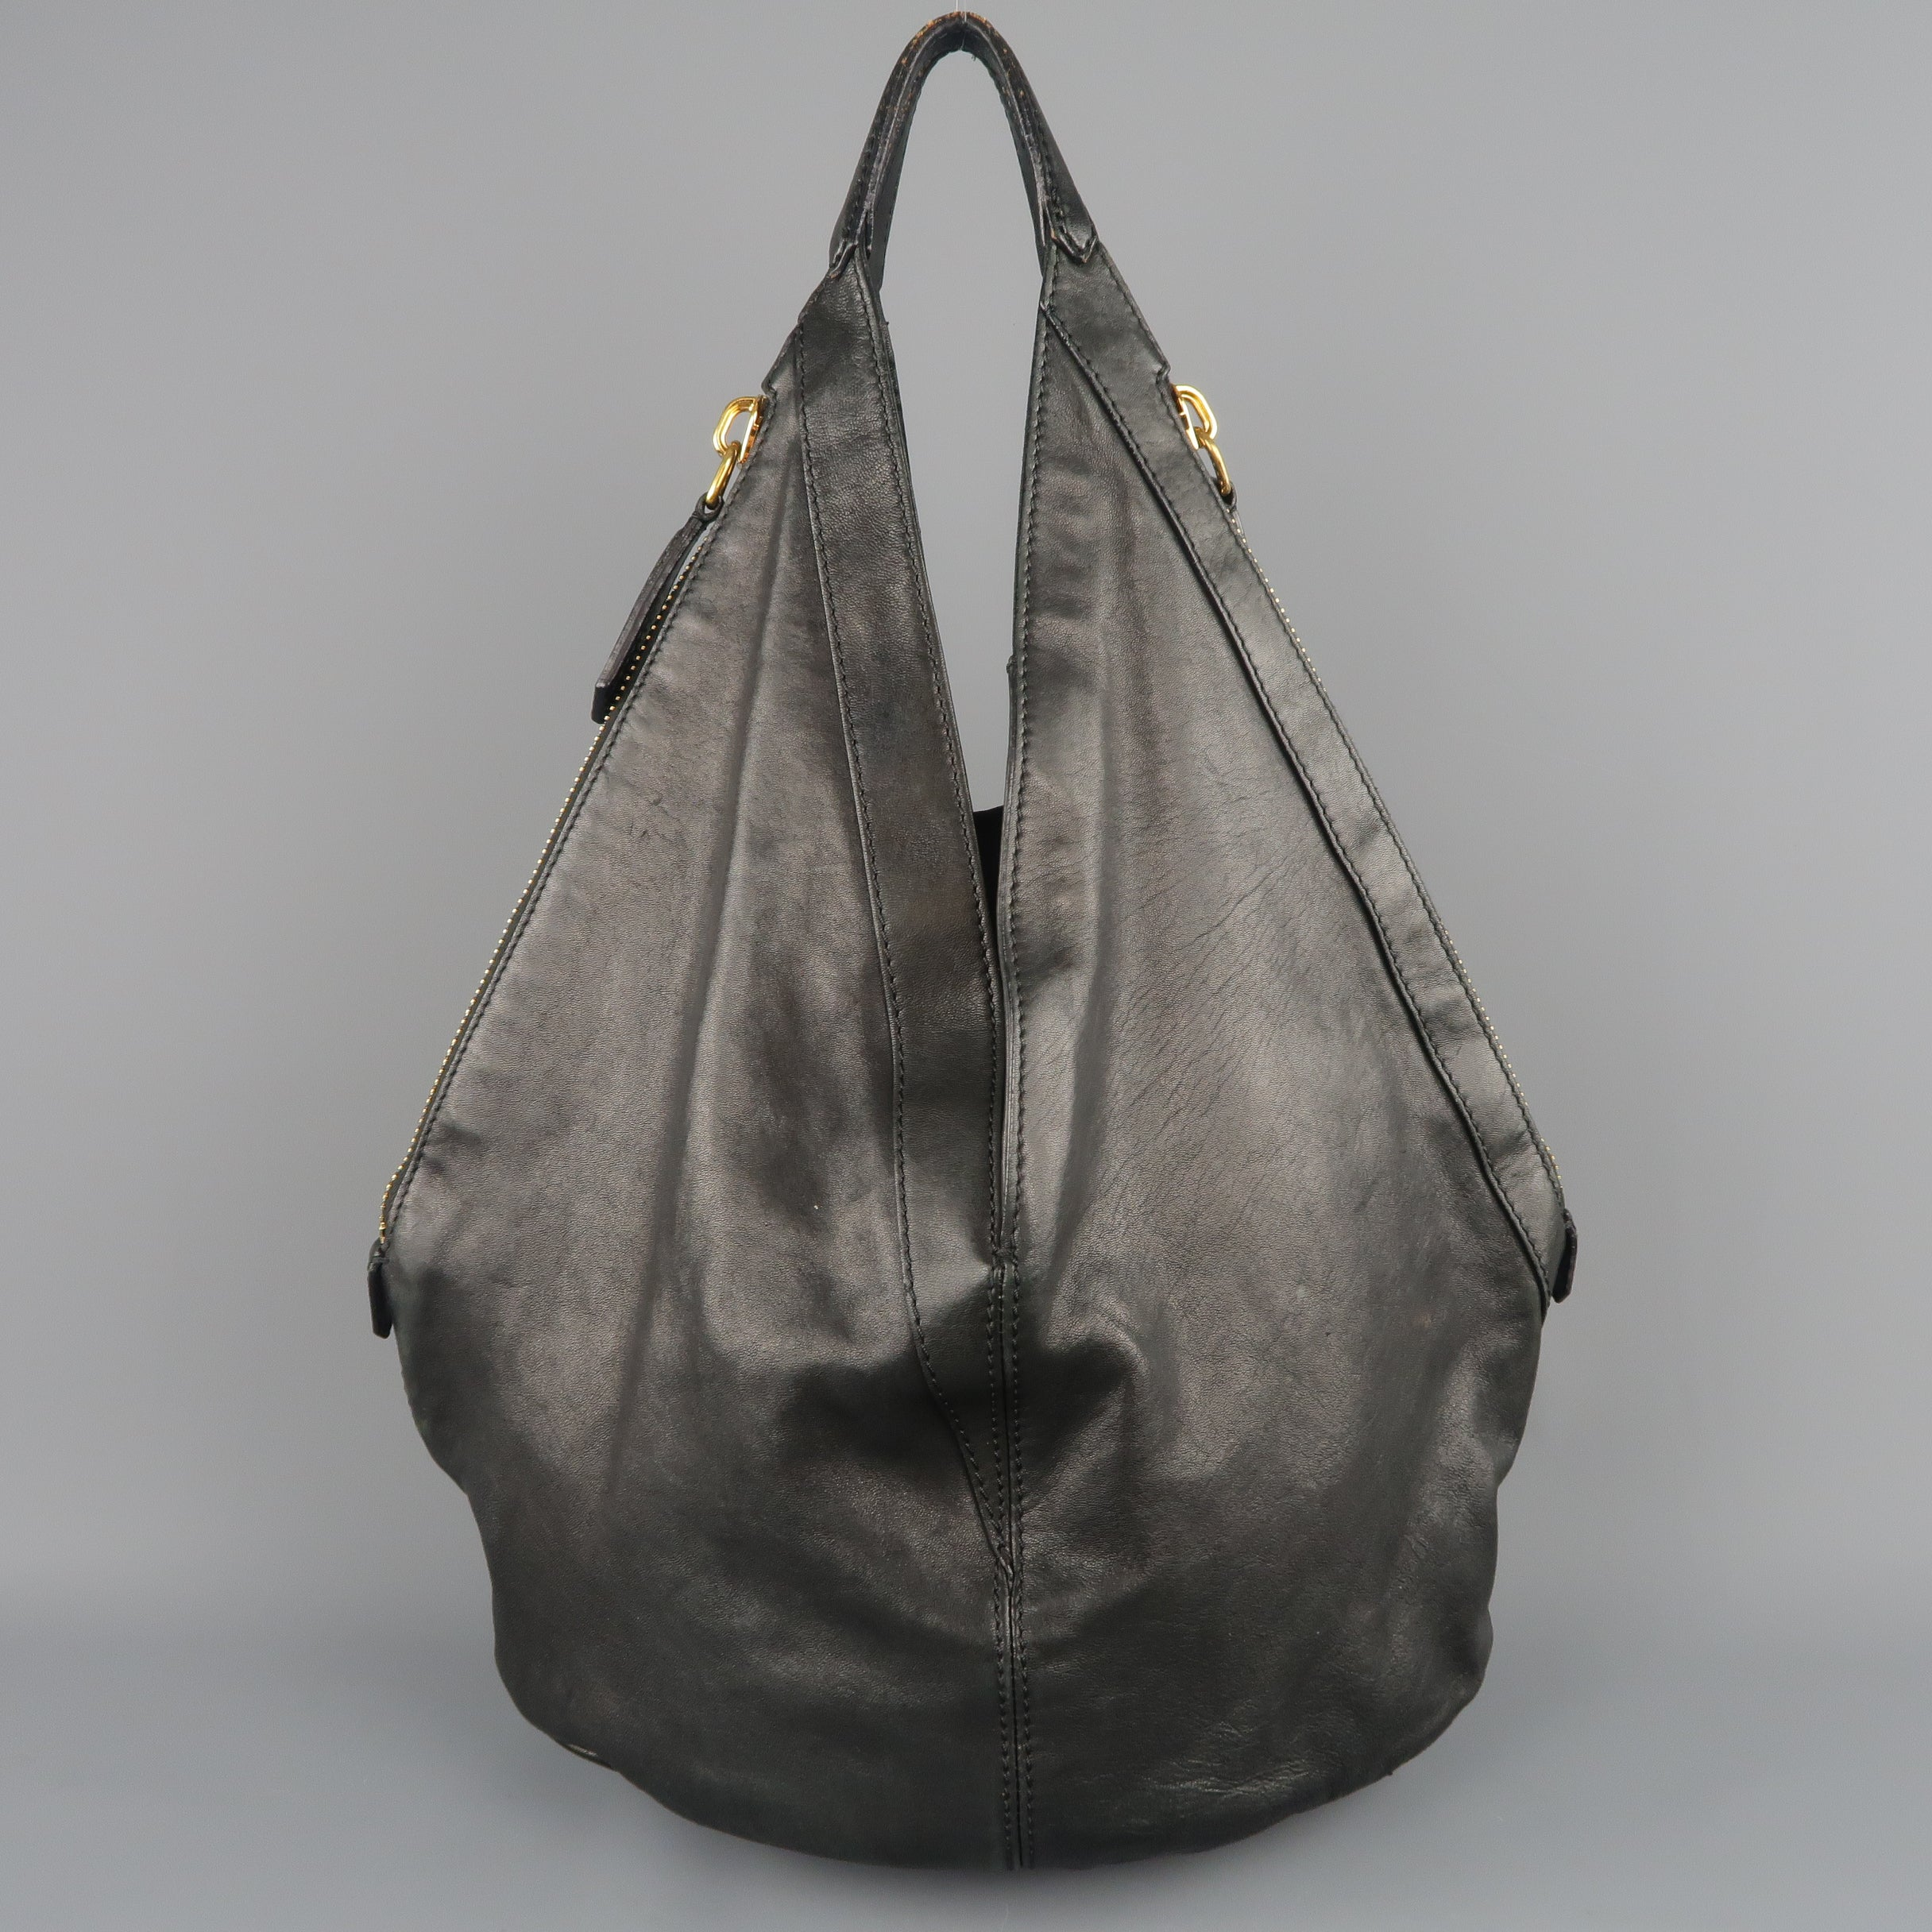 d515e325a175 GIVENCHY Black Leather Gold Studded TINHAN Large Hobo Bag at 1stdibs